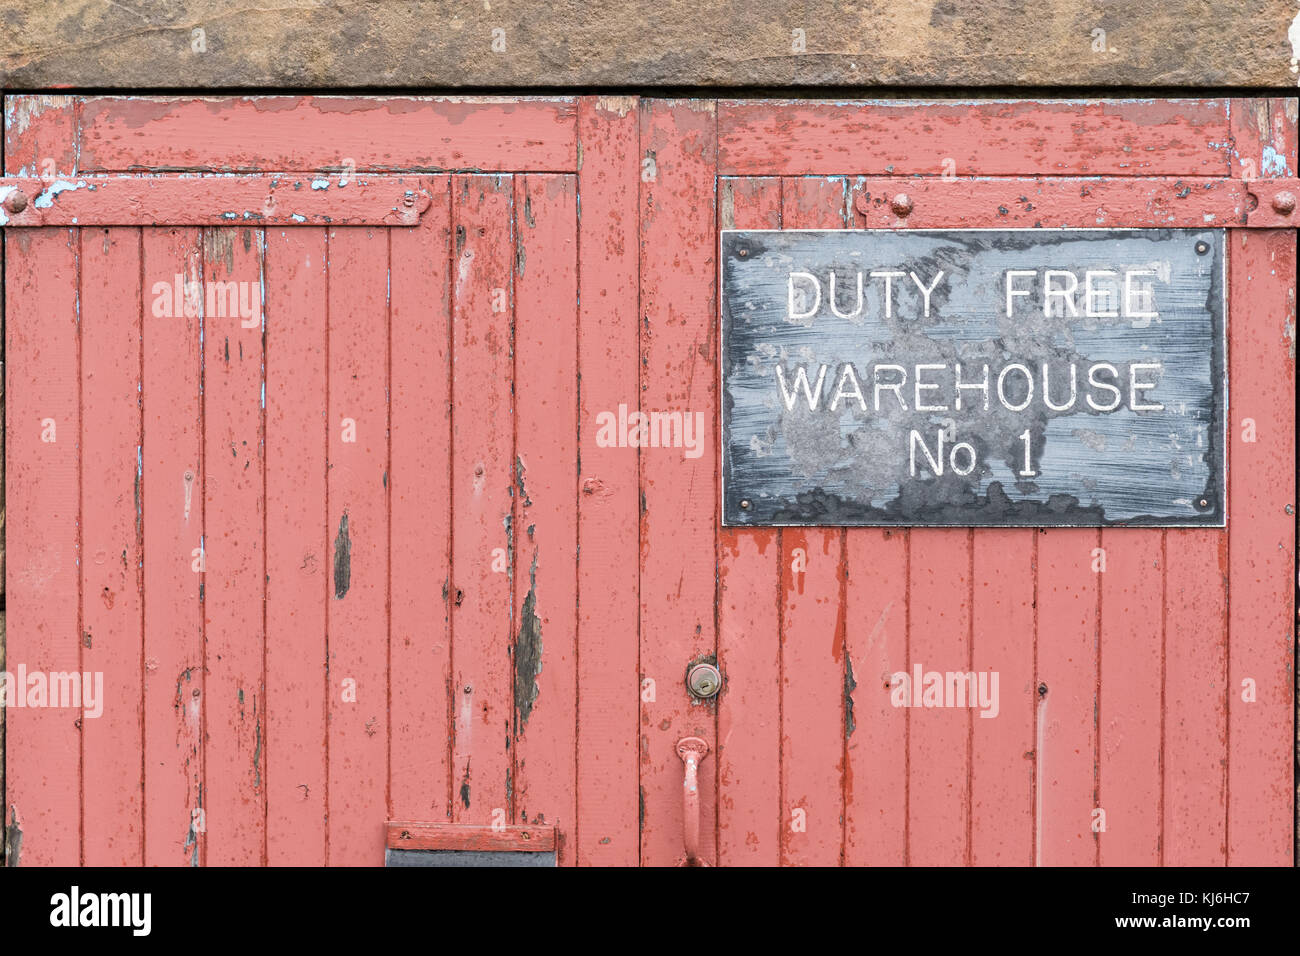 Duty Free Warehouse No 1 sign on faded red doors, Scapa whisky distillery, Orkney, Scotland, UK - Stock Image